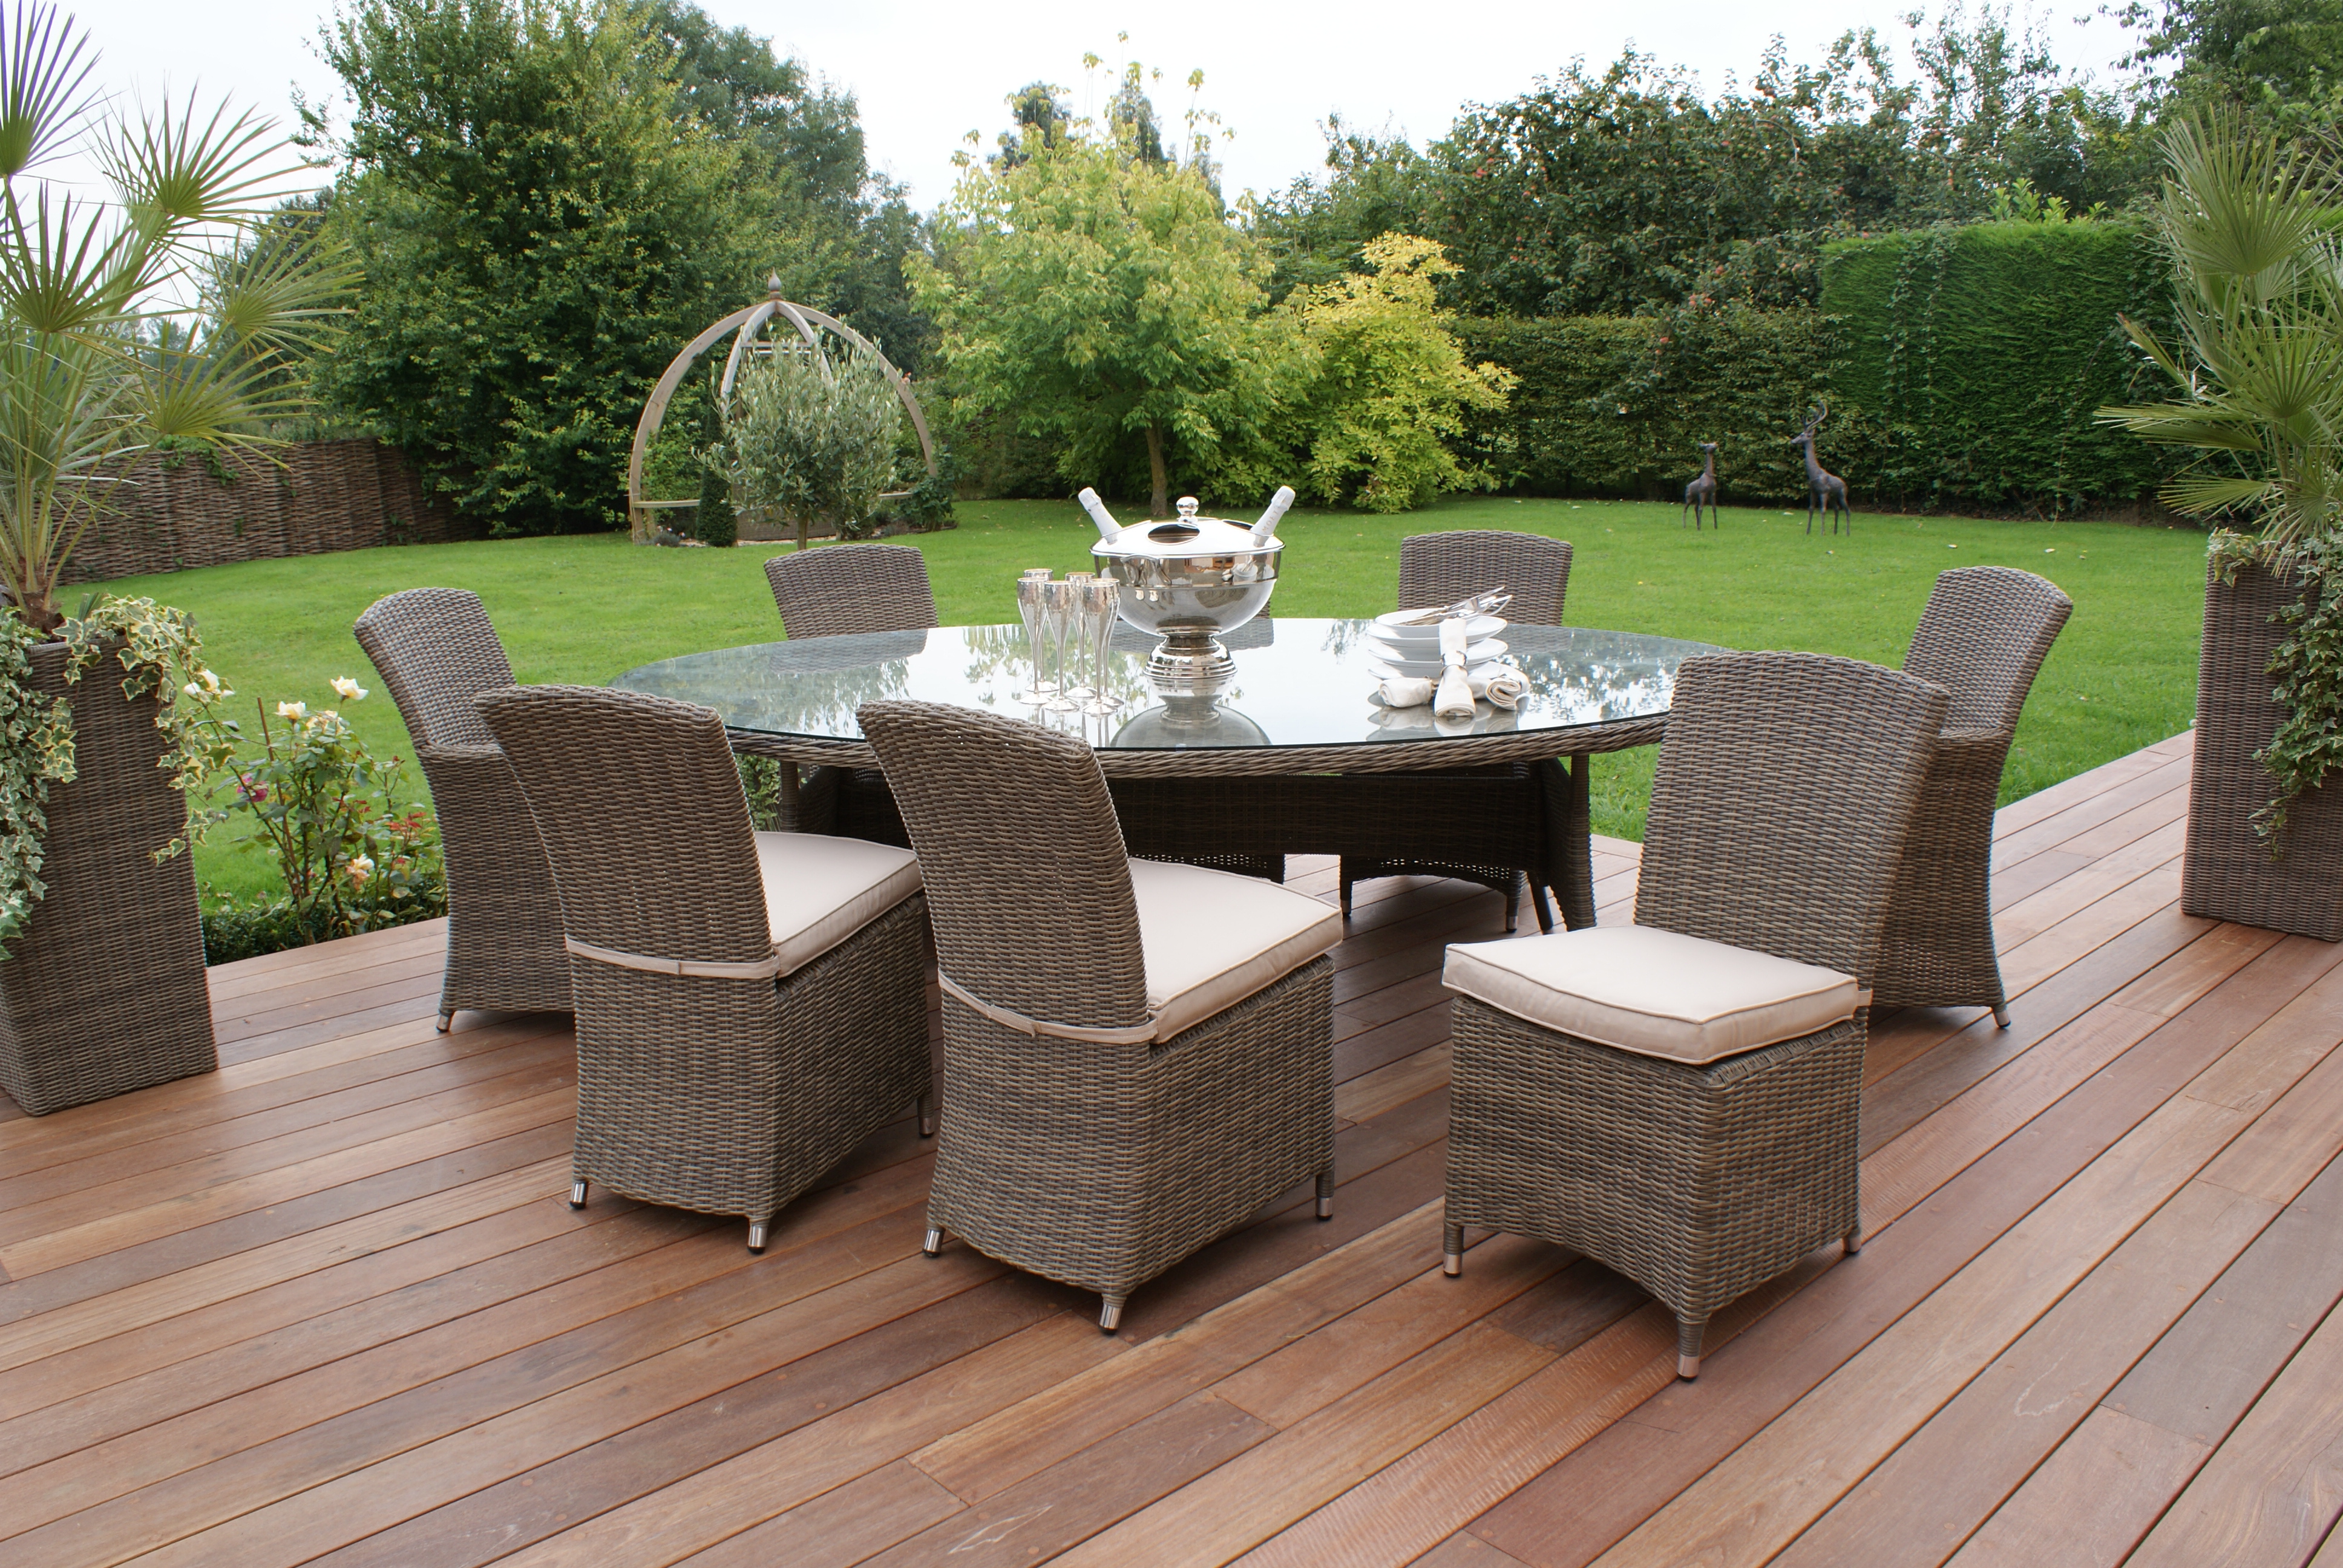 Winchester Oval Table with 2 Carver and 6 Armless Chairs